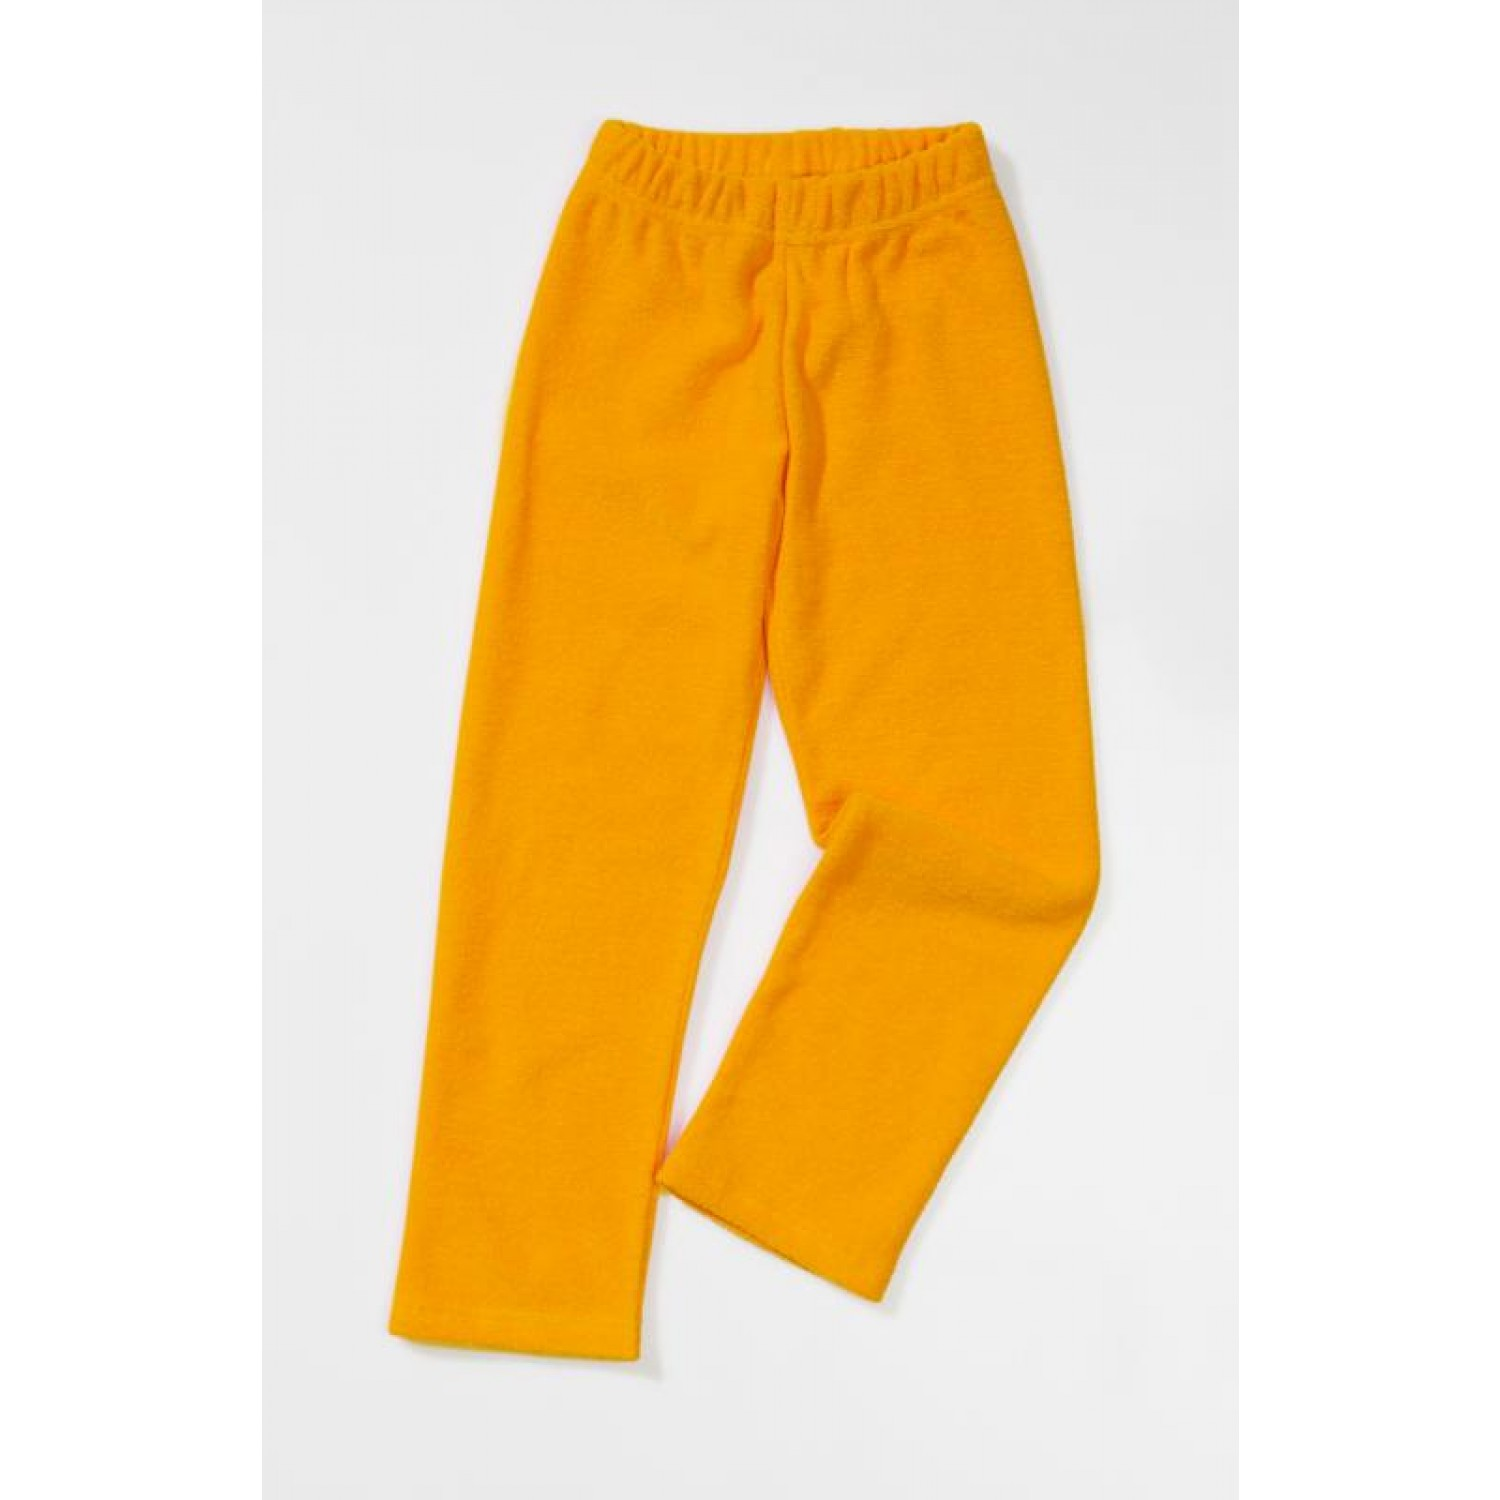 Trousers of terry cloth made of organic cotton